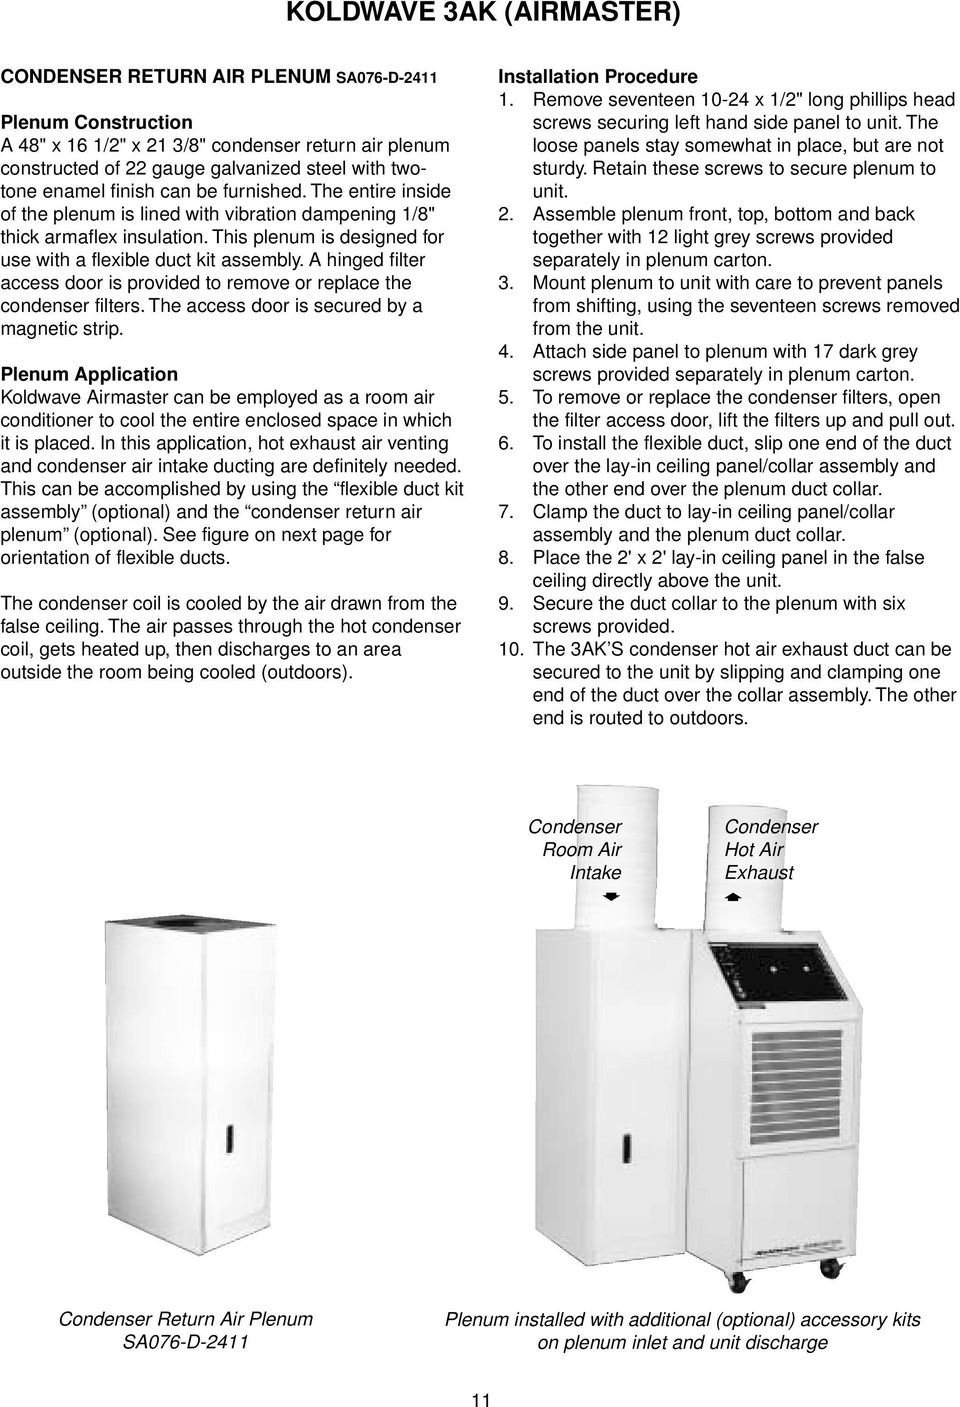 garrison portable air conditioner manual pdf